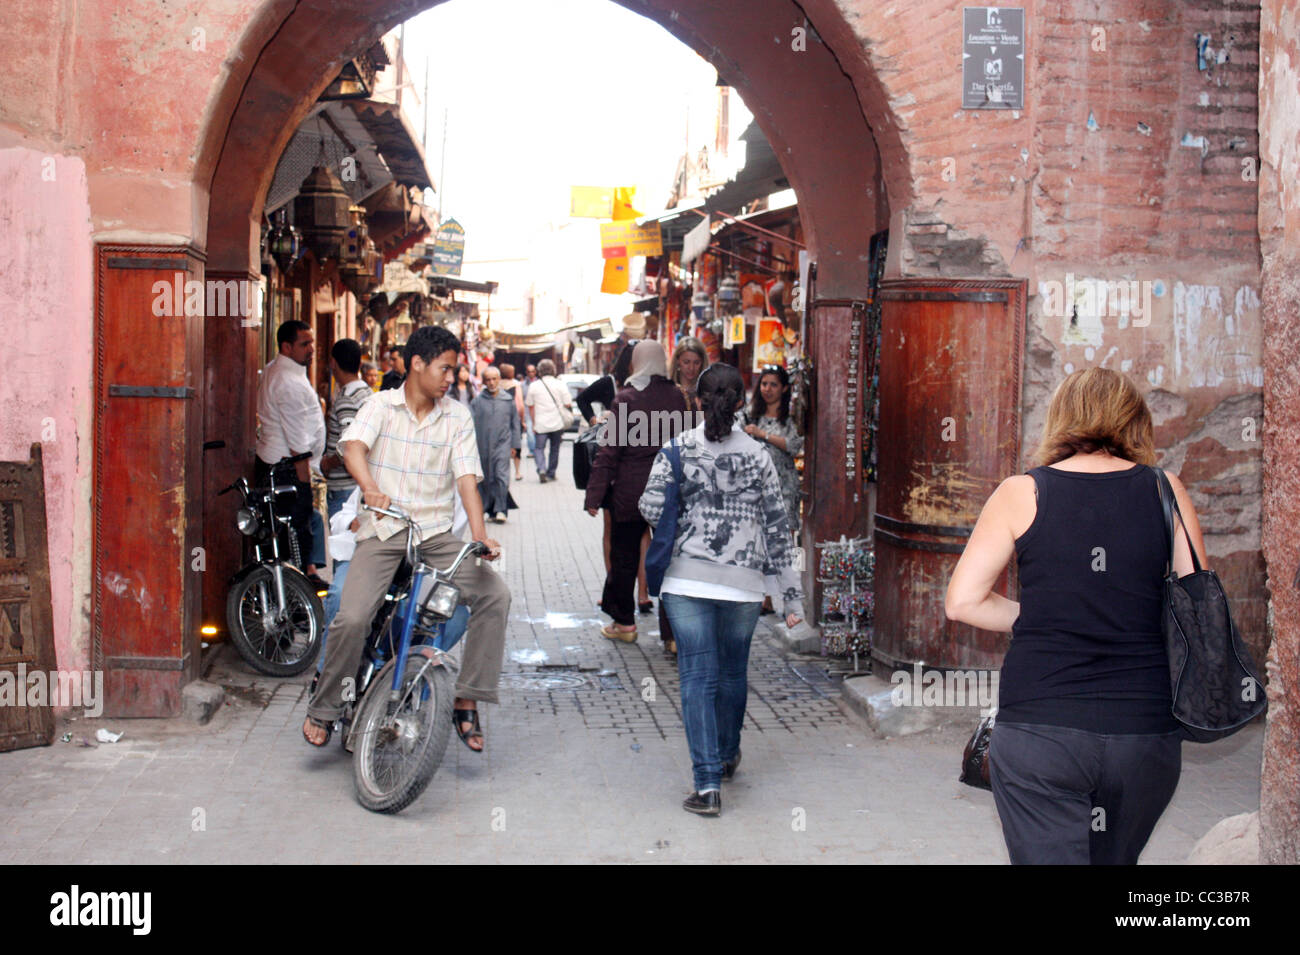 Marrakech alley way in the Medina with pedestrians and cyclists - Stock Image